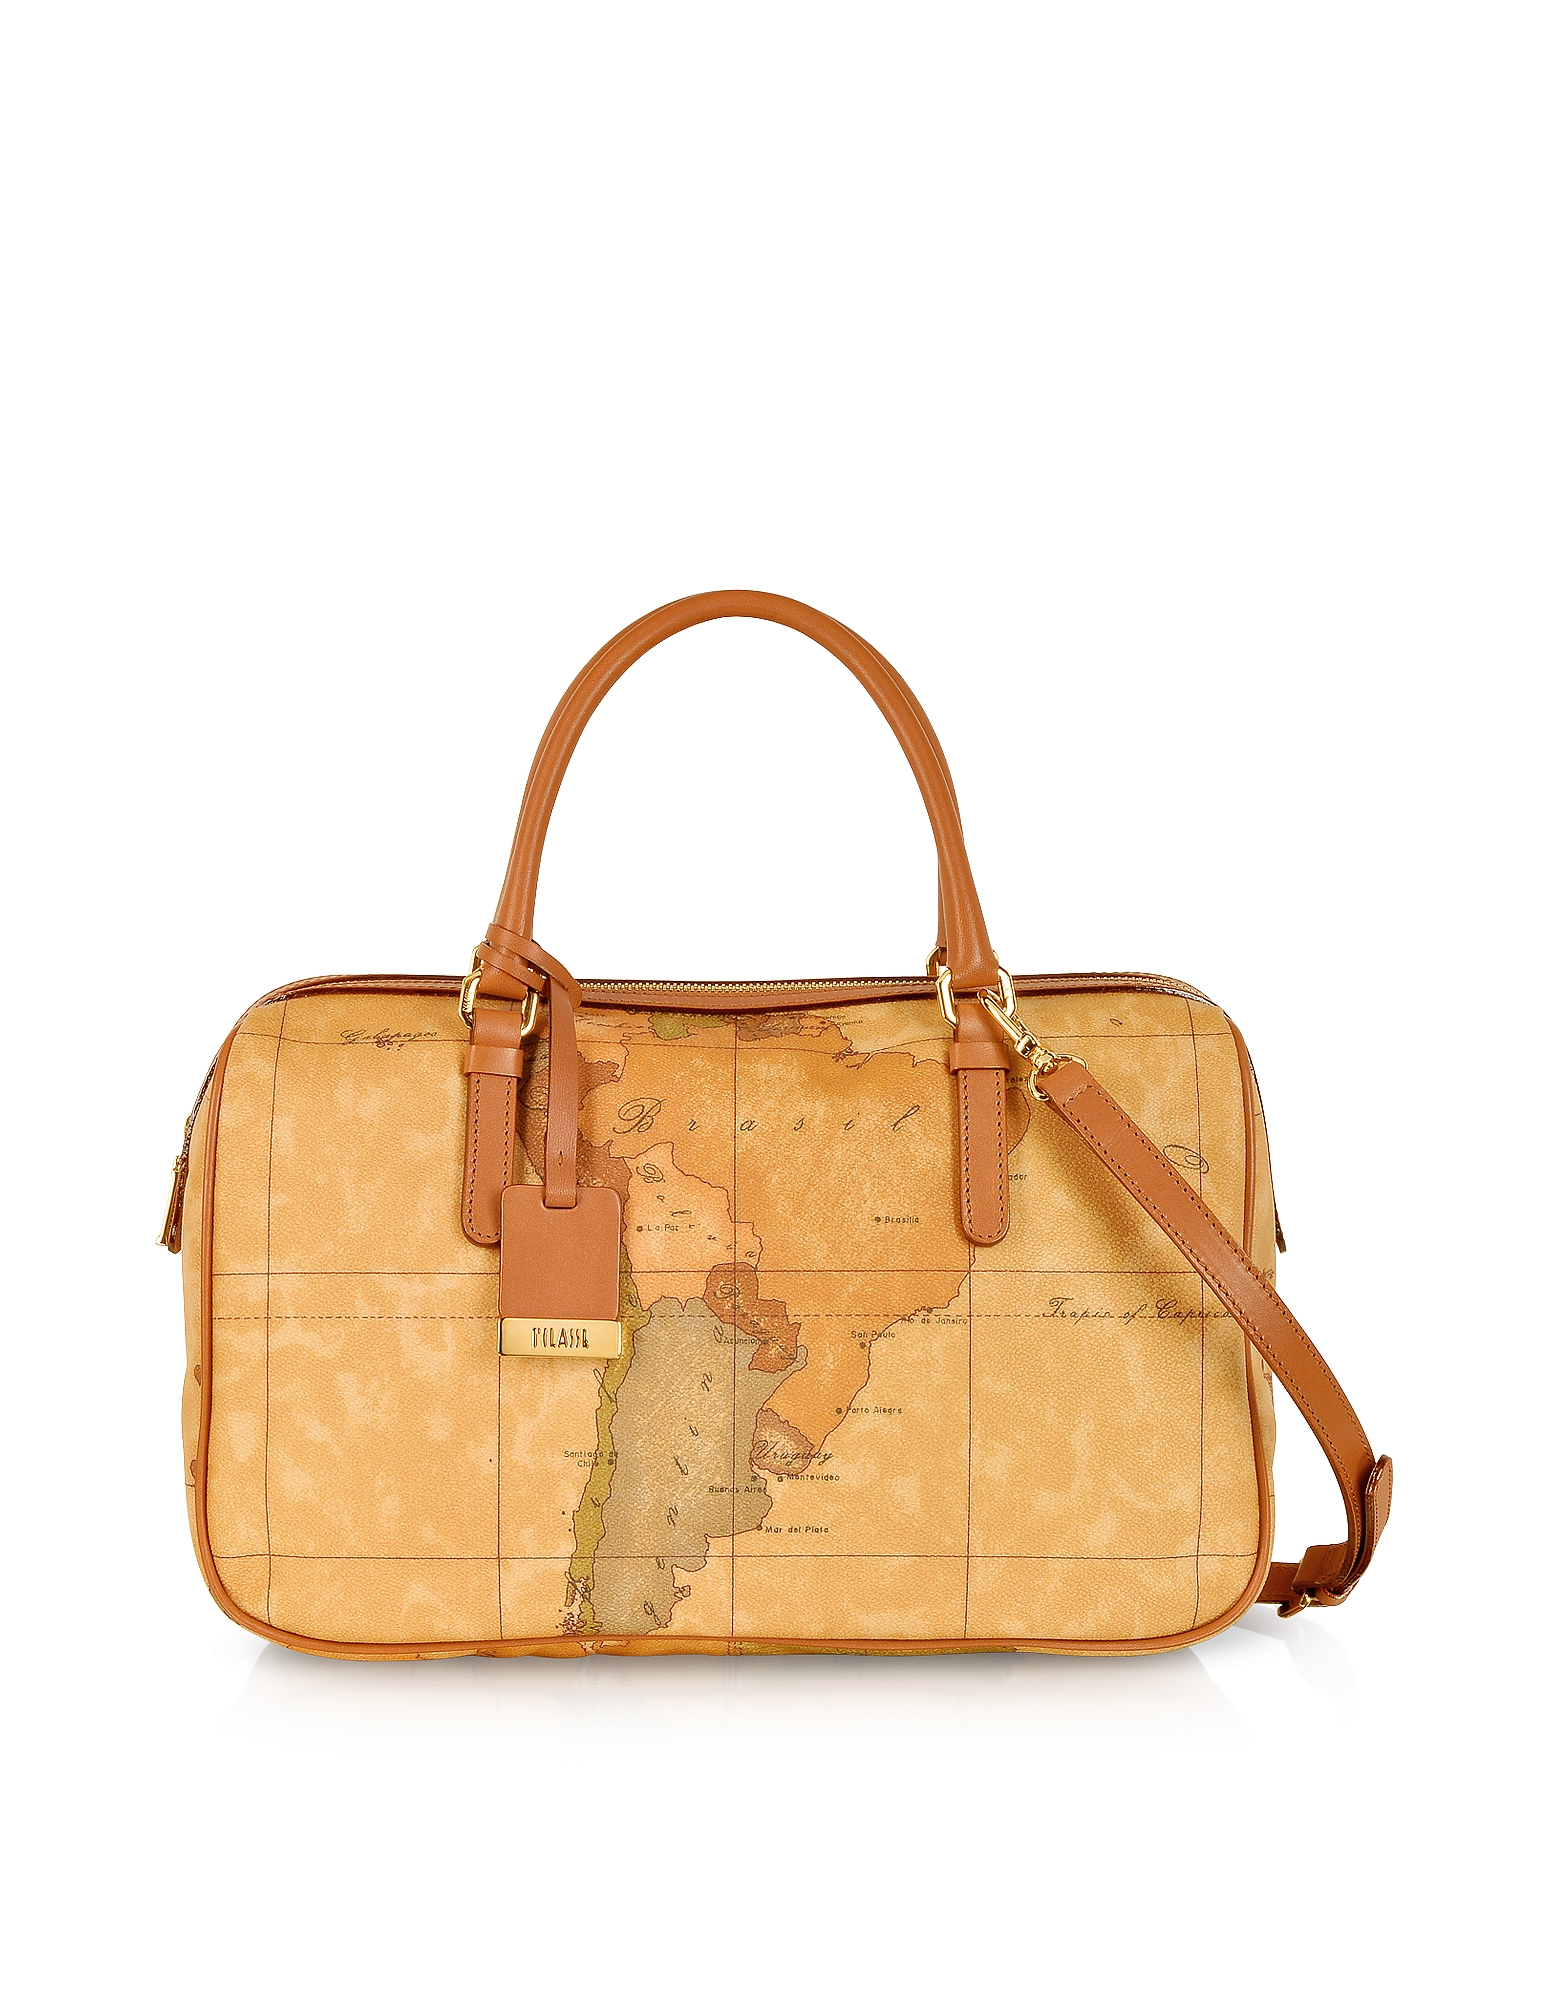 Alviero Martini 1A Classe Handbags, 1a Prima Classe - Geo Printed Medium 'New Basic' Satchel Bag